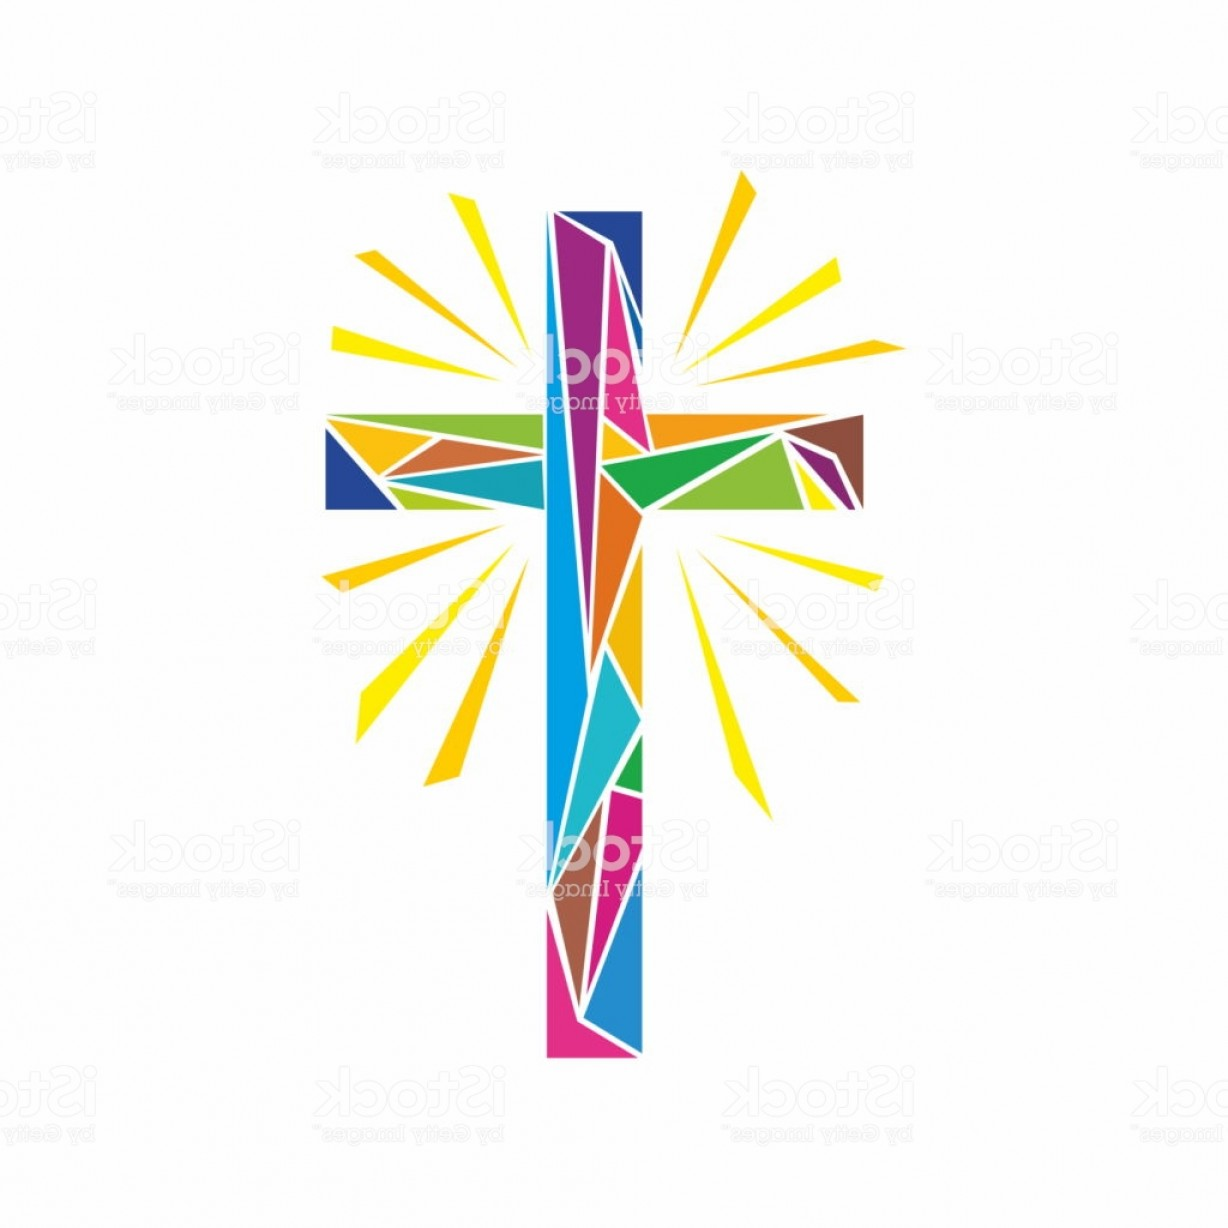 Downloadable Vector Cross: Church Logo Christian Symbols The Cross Of Jesus Christ Made Up Of Multi Colored Gm